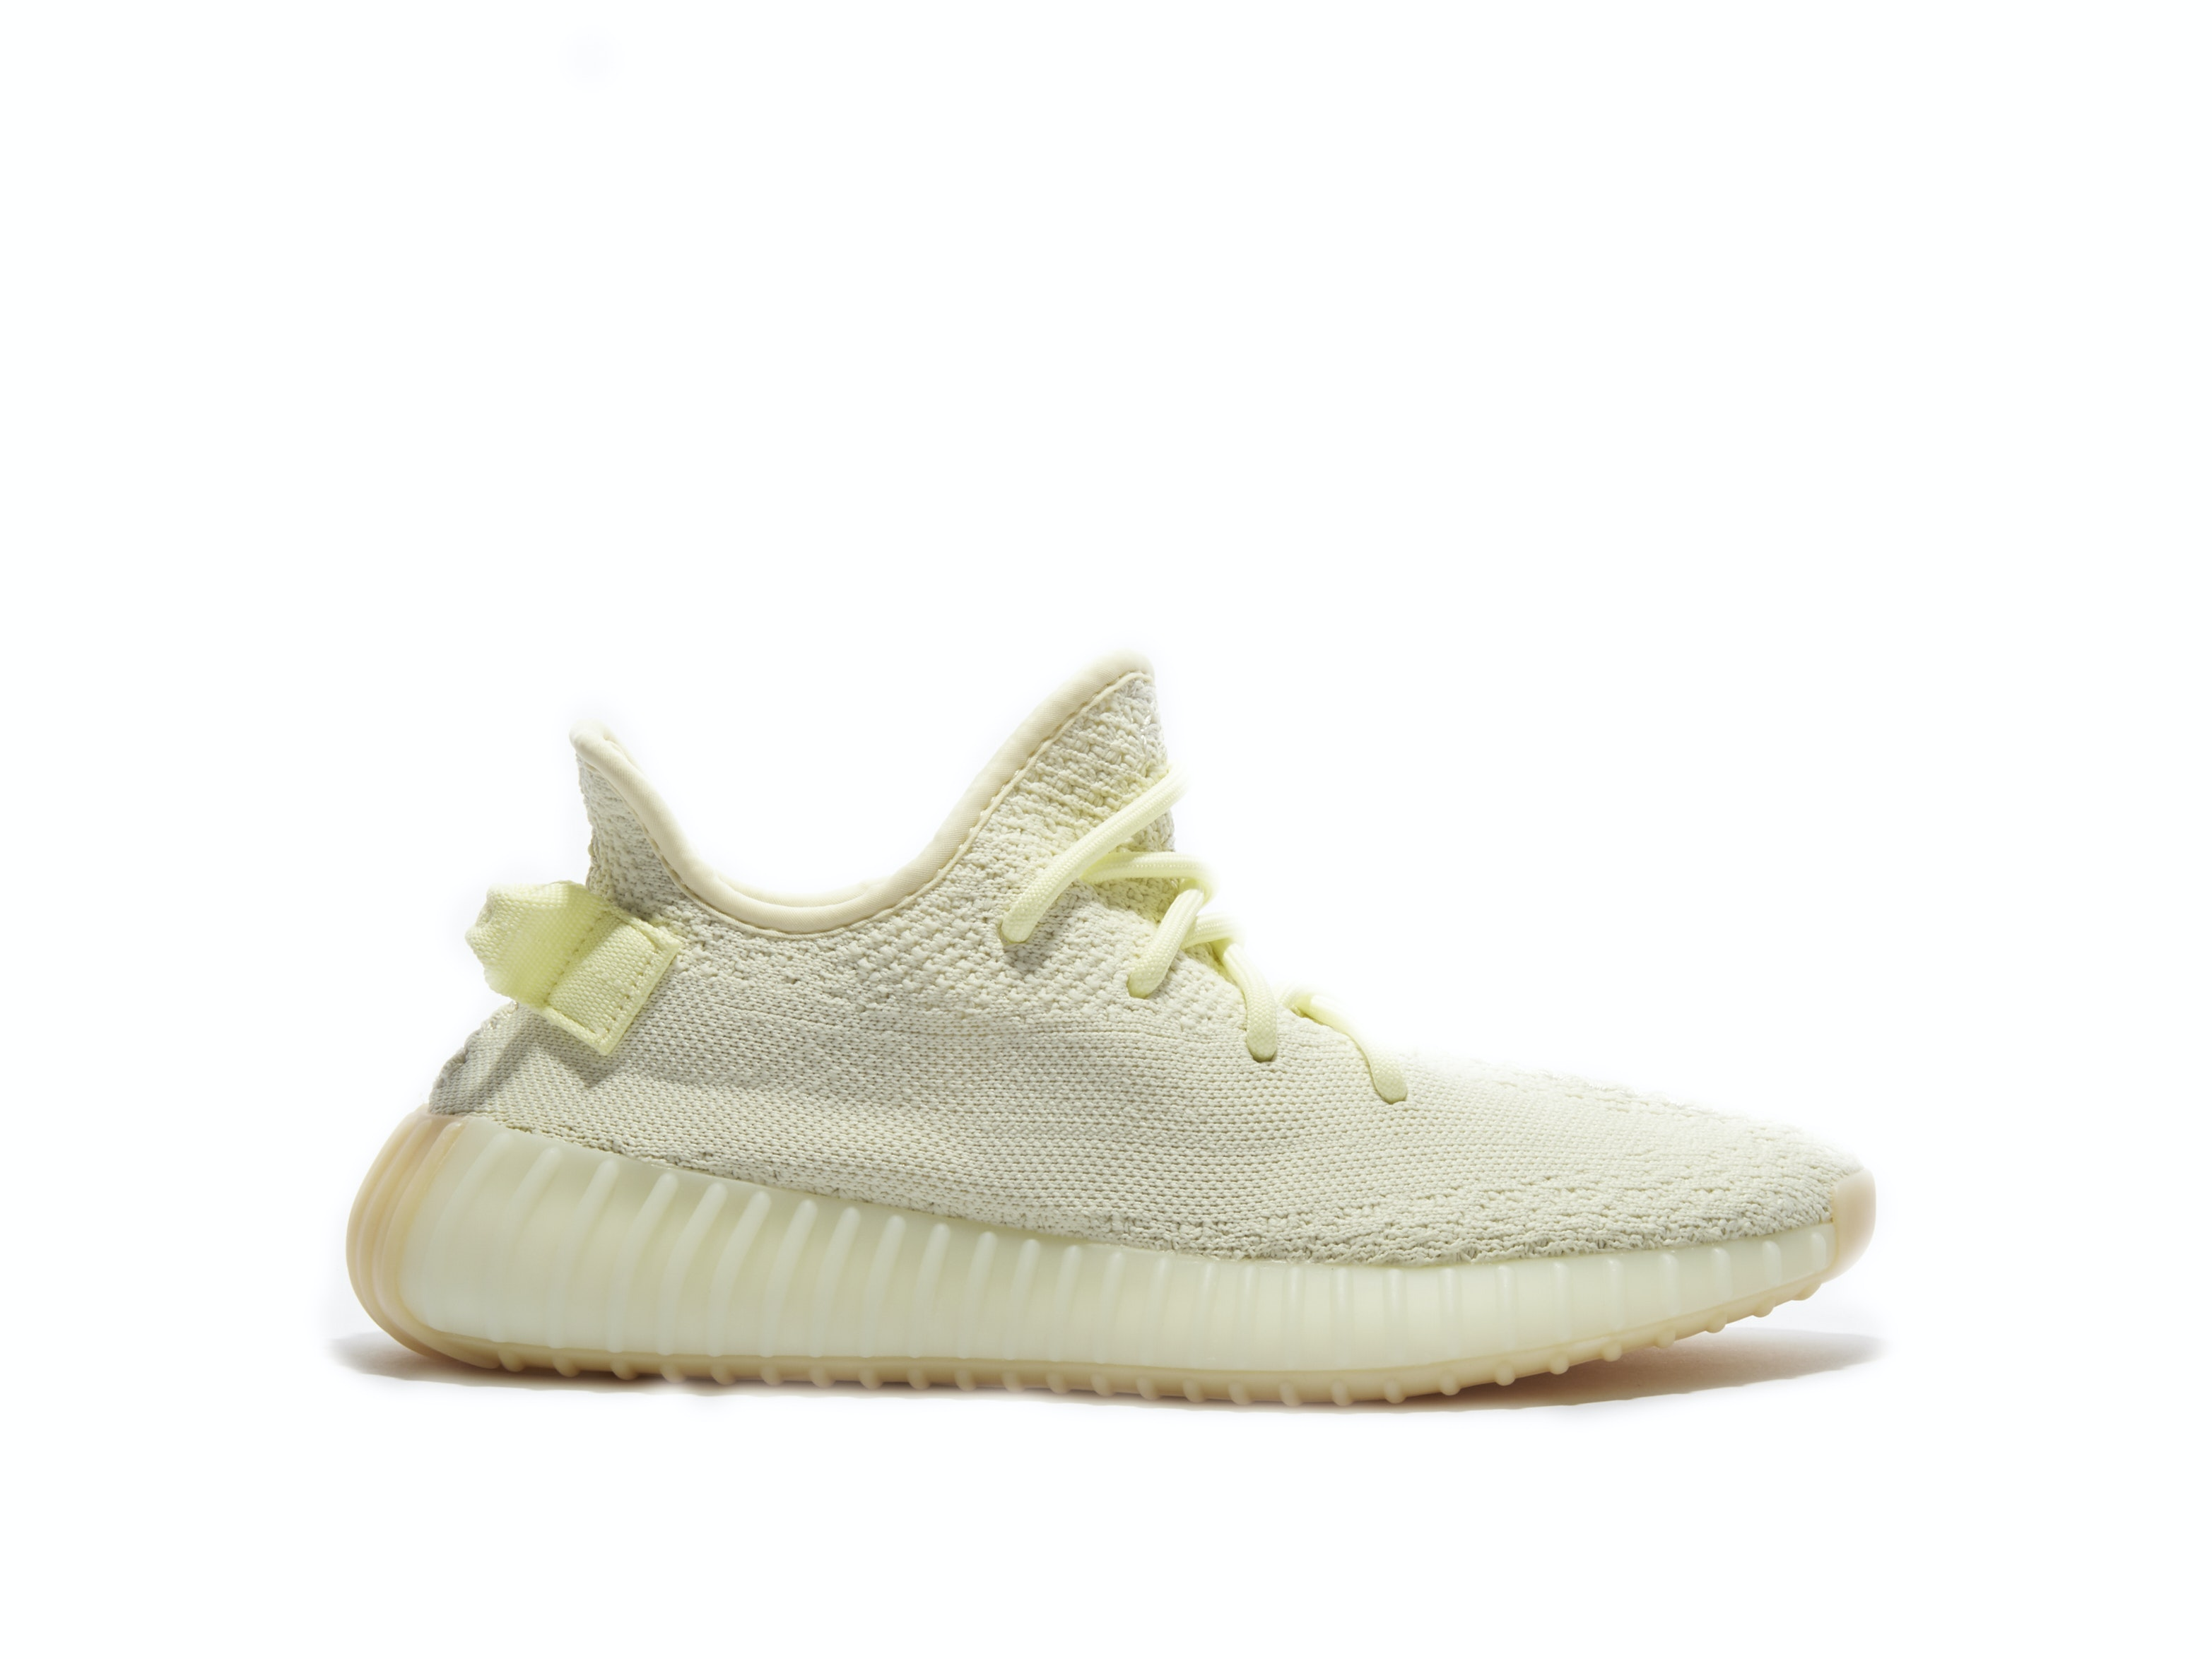 new products 19945 d04df Yeezy Boost 350 V2 Butter. 100% AuthenticAvg Delivery Time  1-2 days. Adidas    F36980